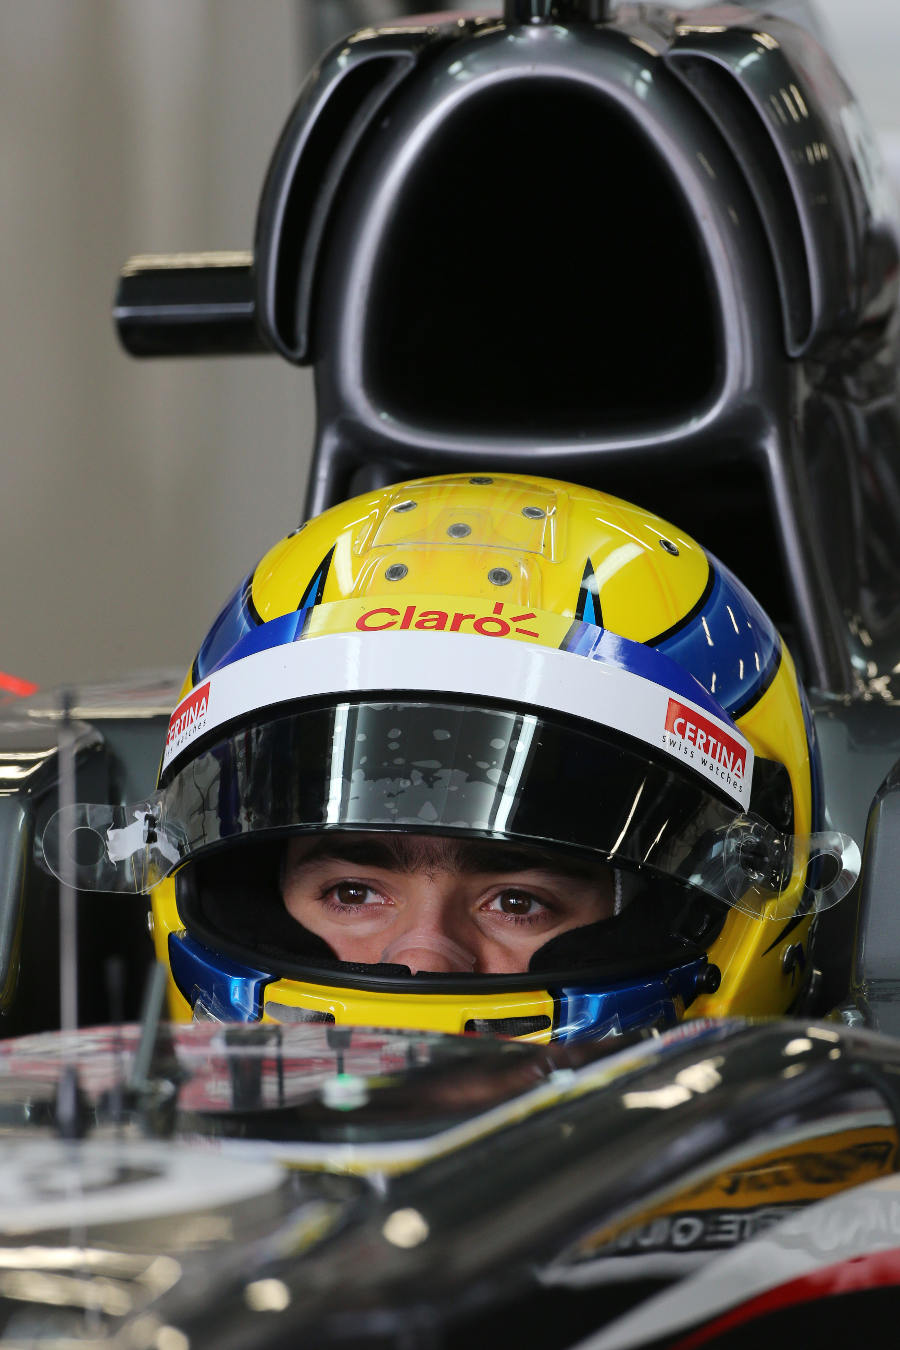 Esteban Gutierrez waits in the cockpit of the Sauber C32